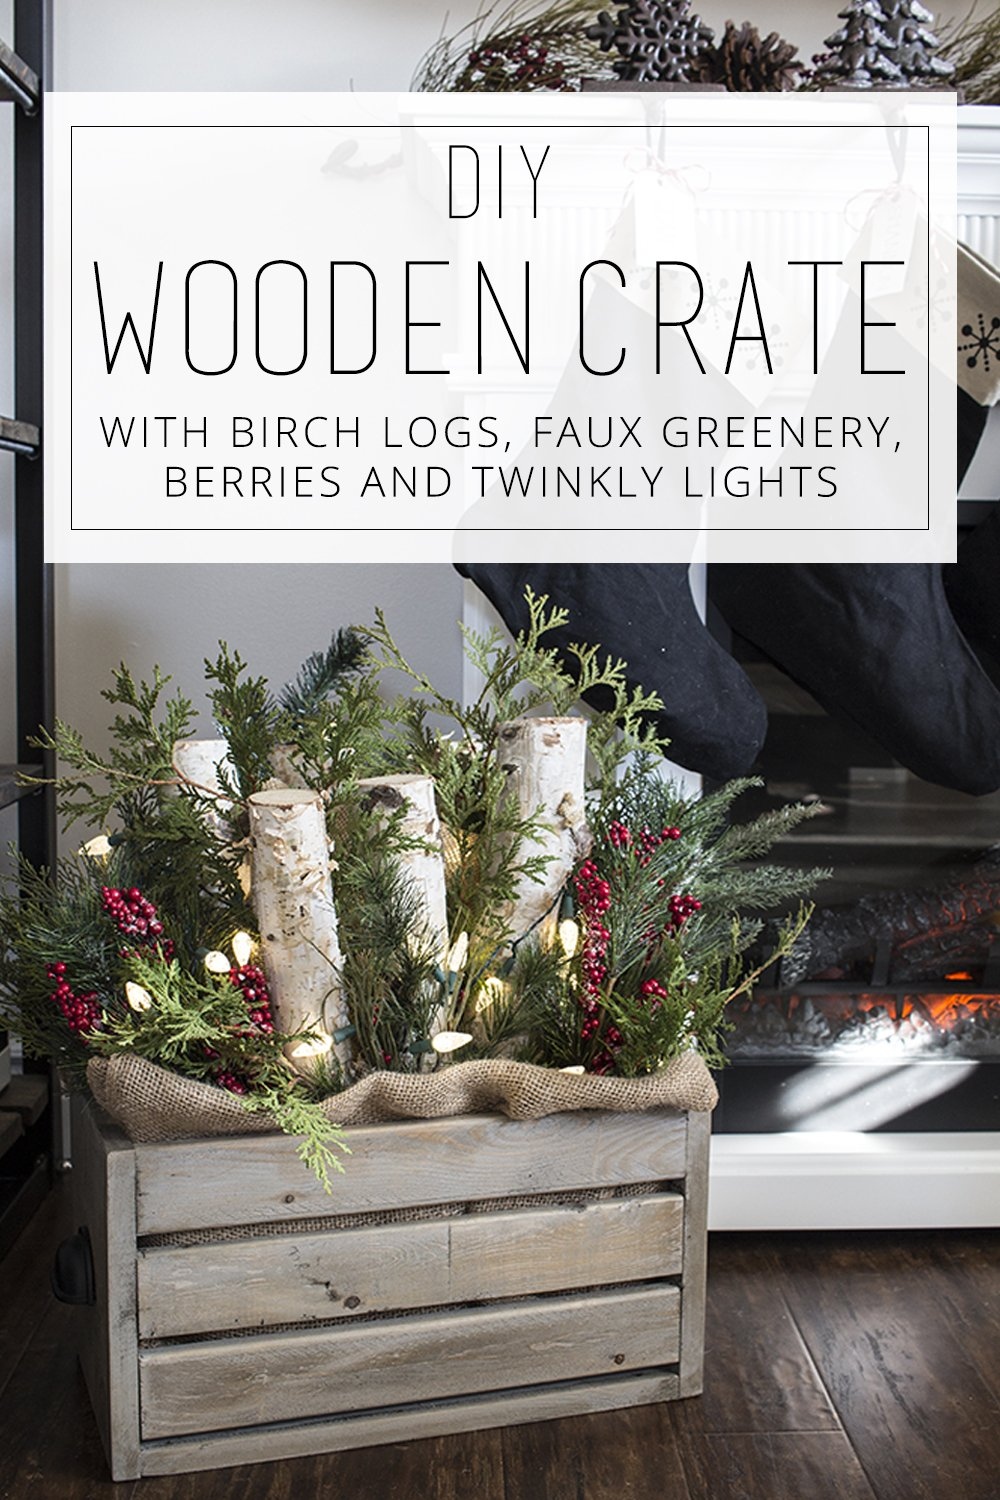 diy wooden crate with logs, greenery and lights